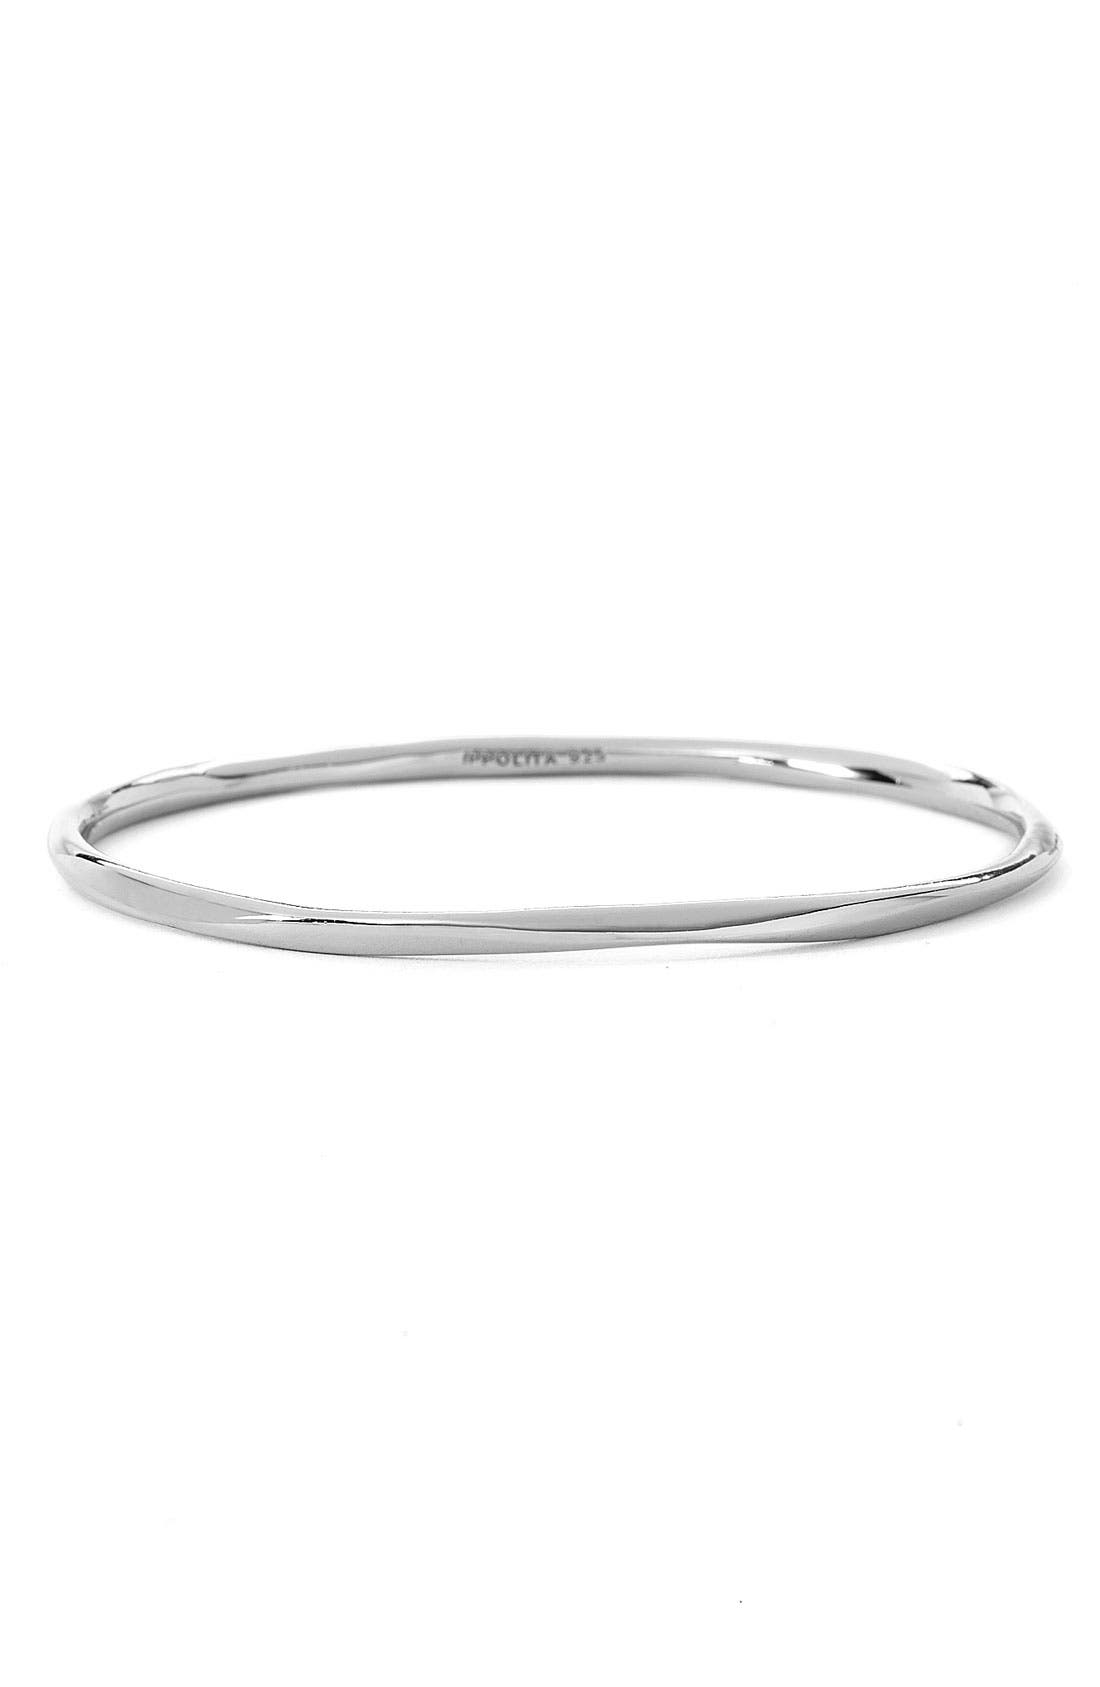 Main Image - Ippolita 'Shiny Squiggle' Sterling Silver Bangle